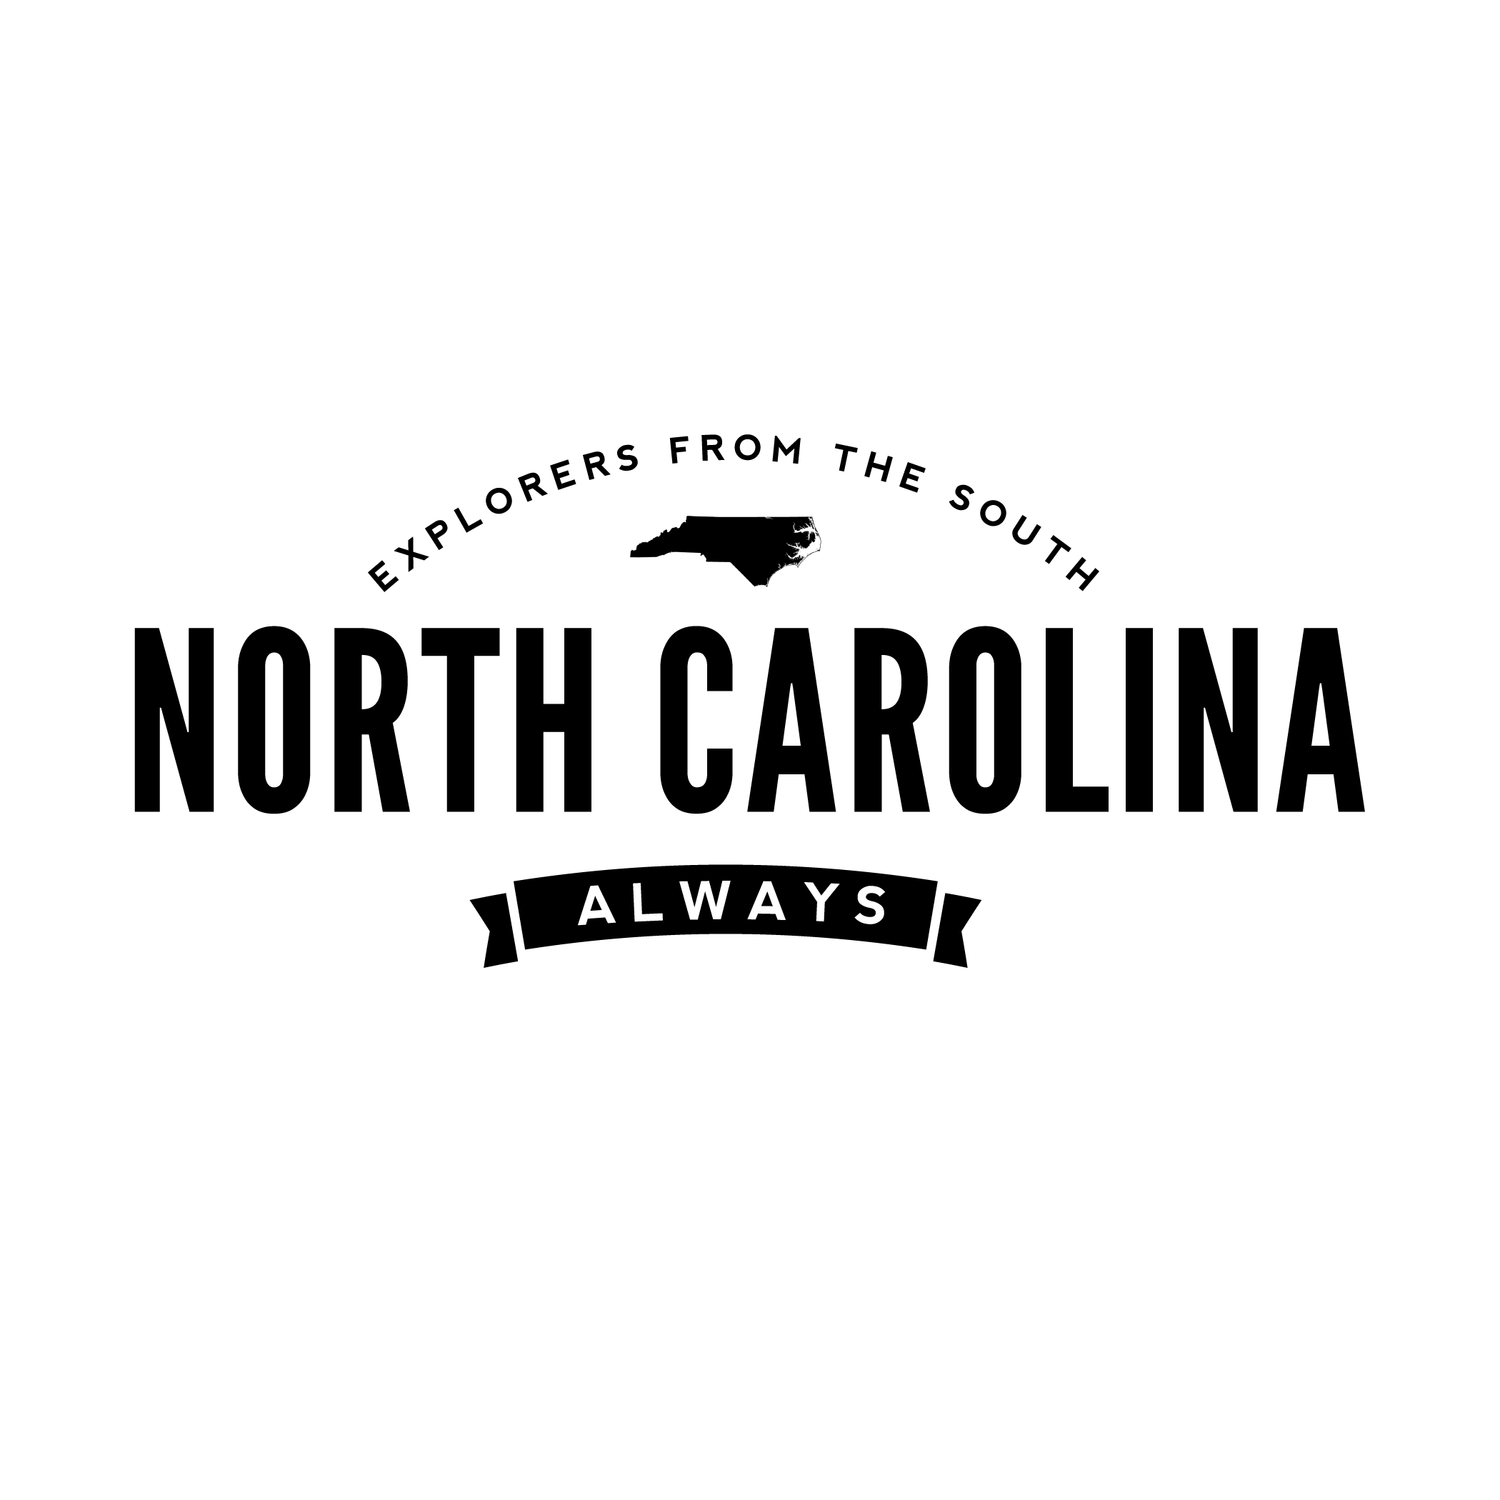 North Carolina Always